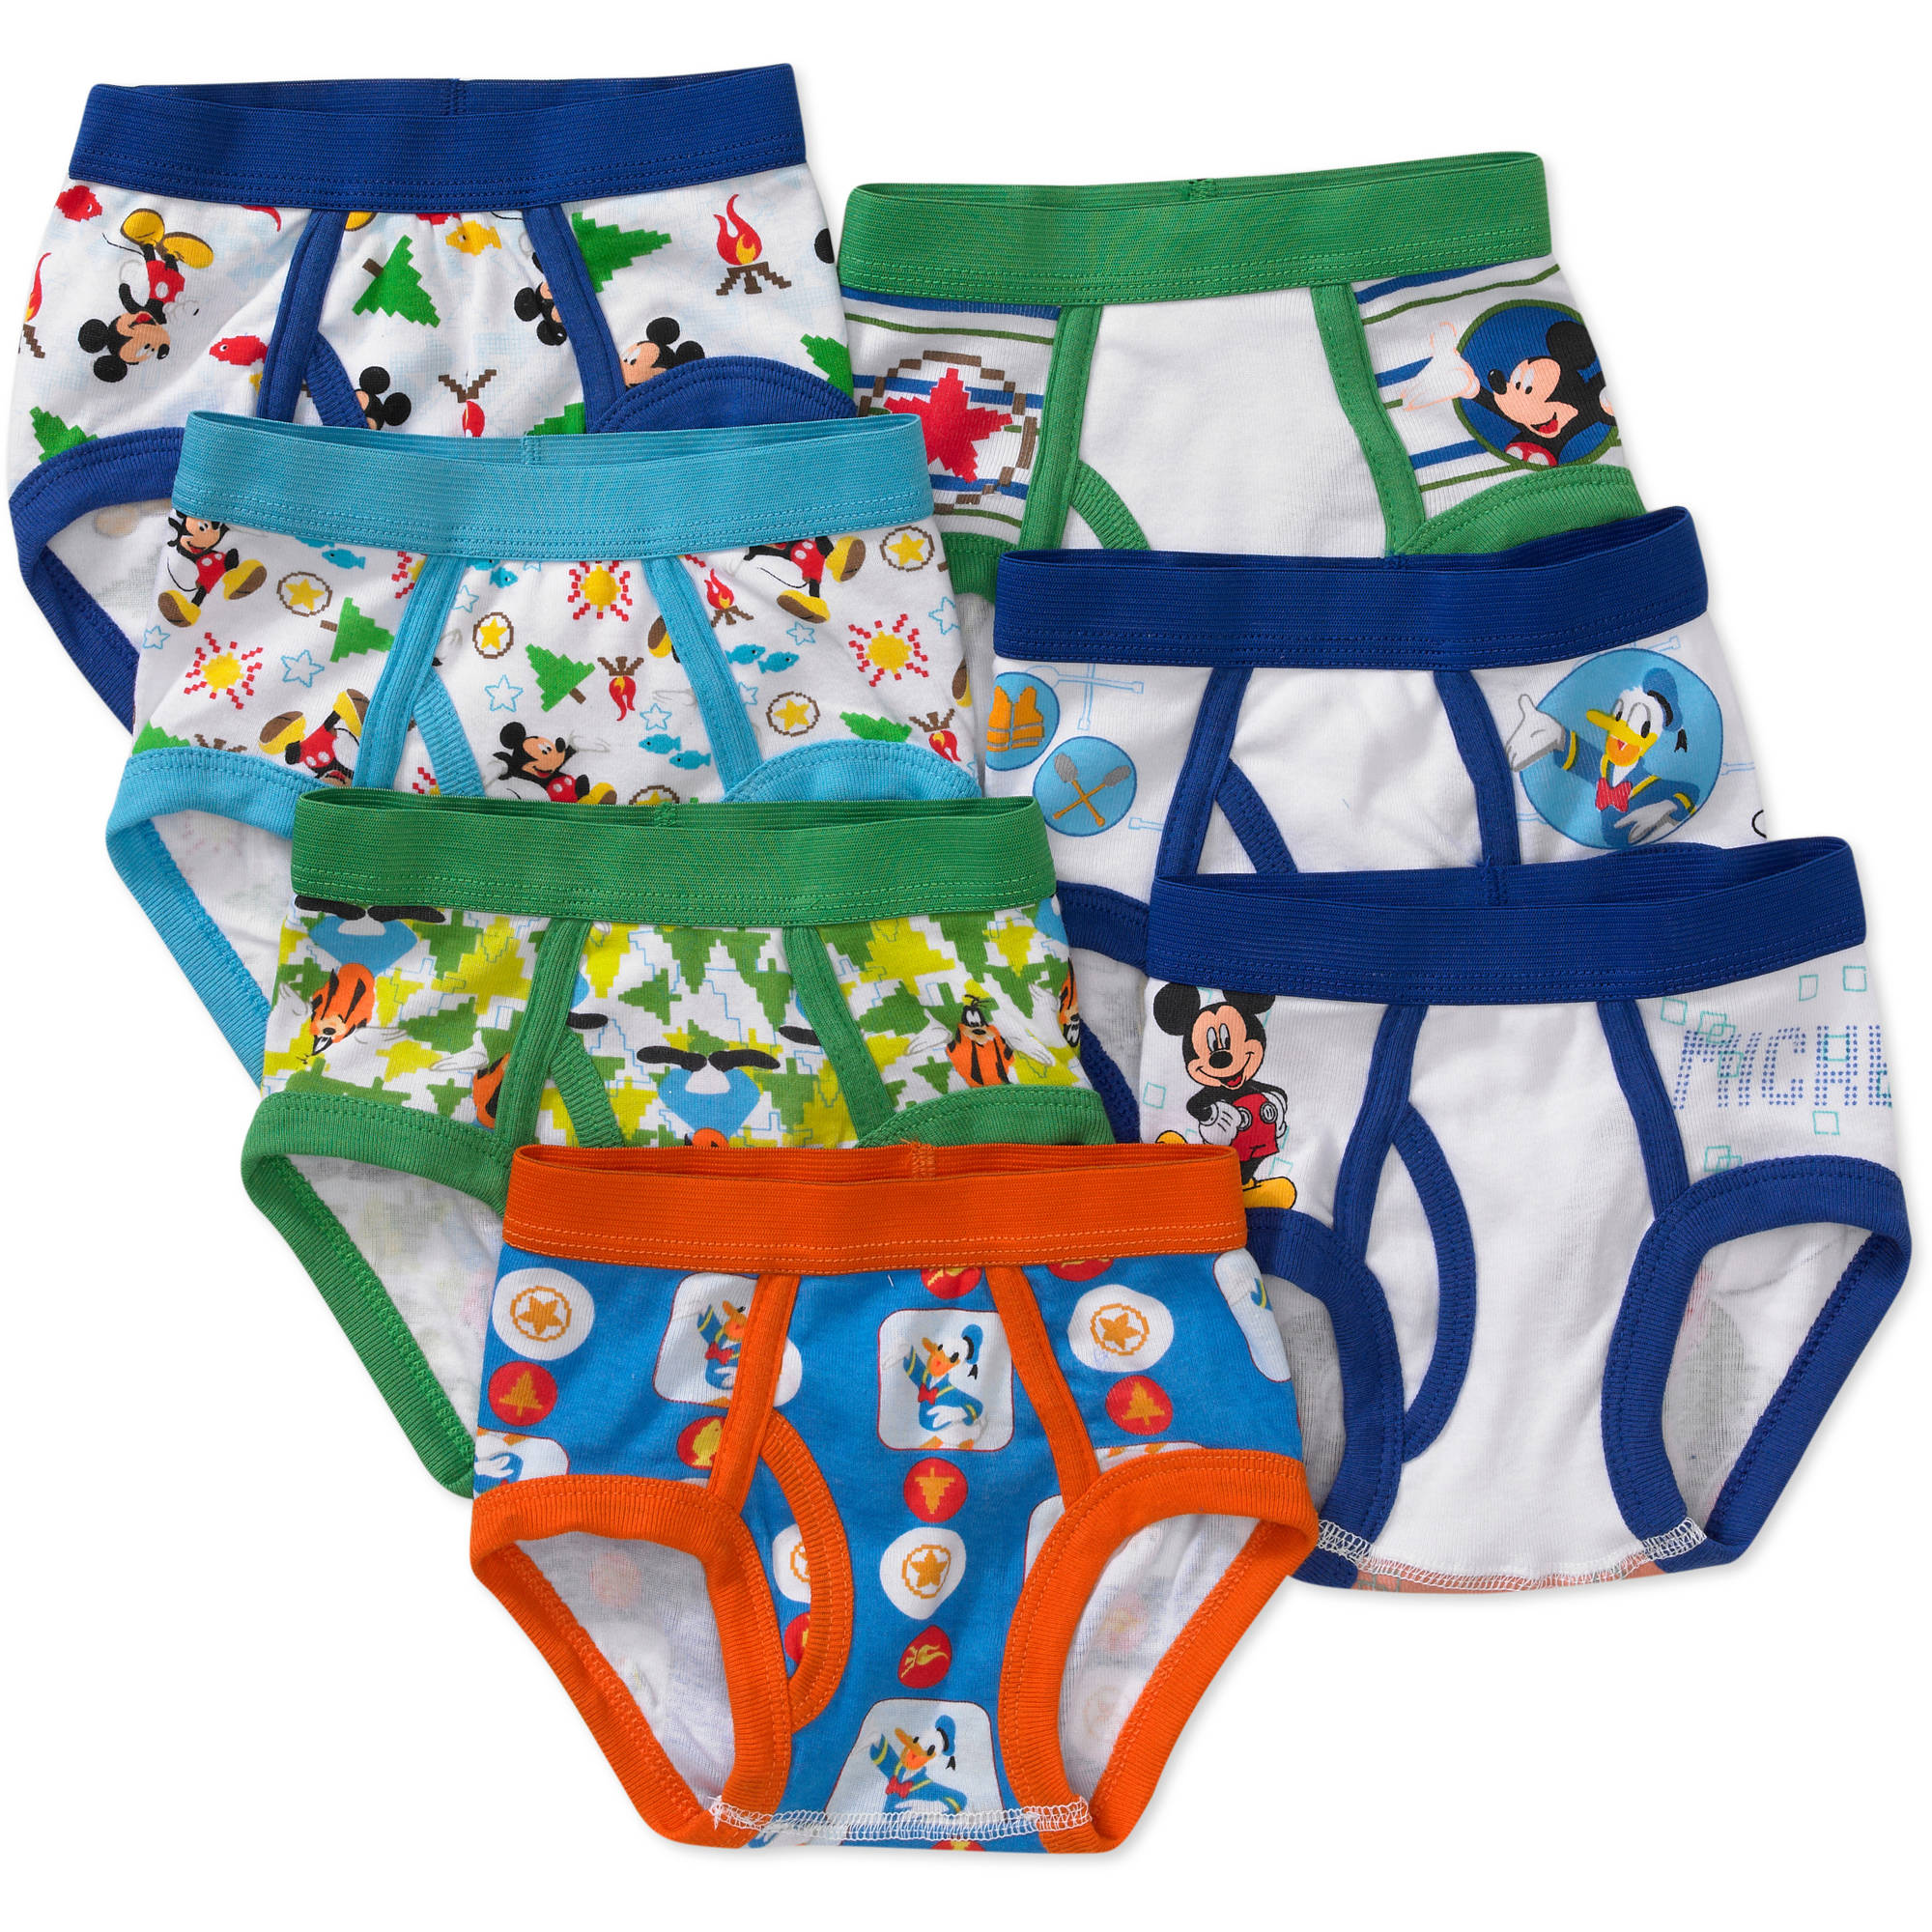 sisk-profi.ga Sophias Style Boutique Inc. The Primrose Lane LLC. Unotux. Leadertux. 4 Nicky Noodles. Boys' Toddler Underwear. Showing 48 of results that match your query. Search Product Result. Baby Toddler Boy Underwear Briefs, 6-Pack. Product Image. Price $ 9. Product Title.